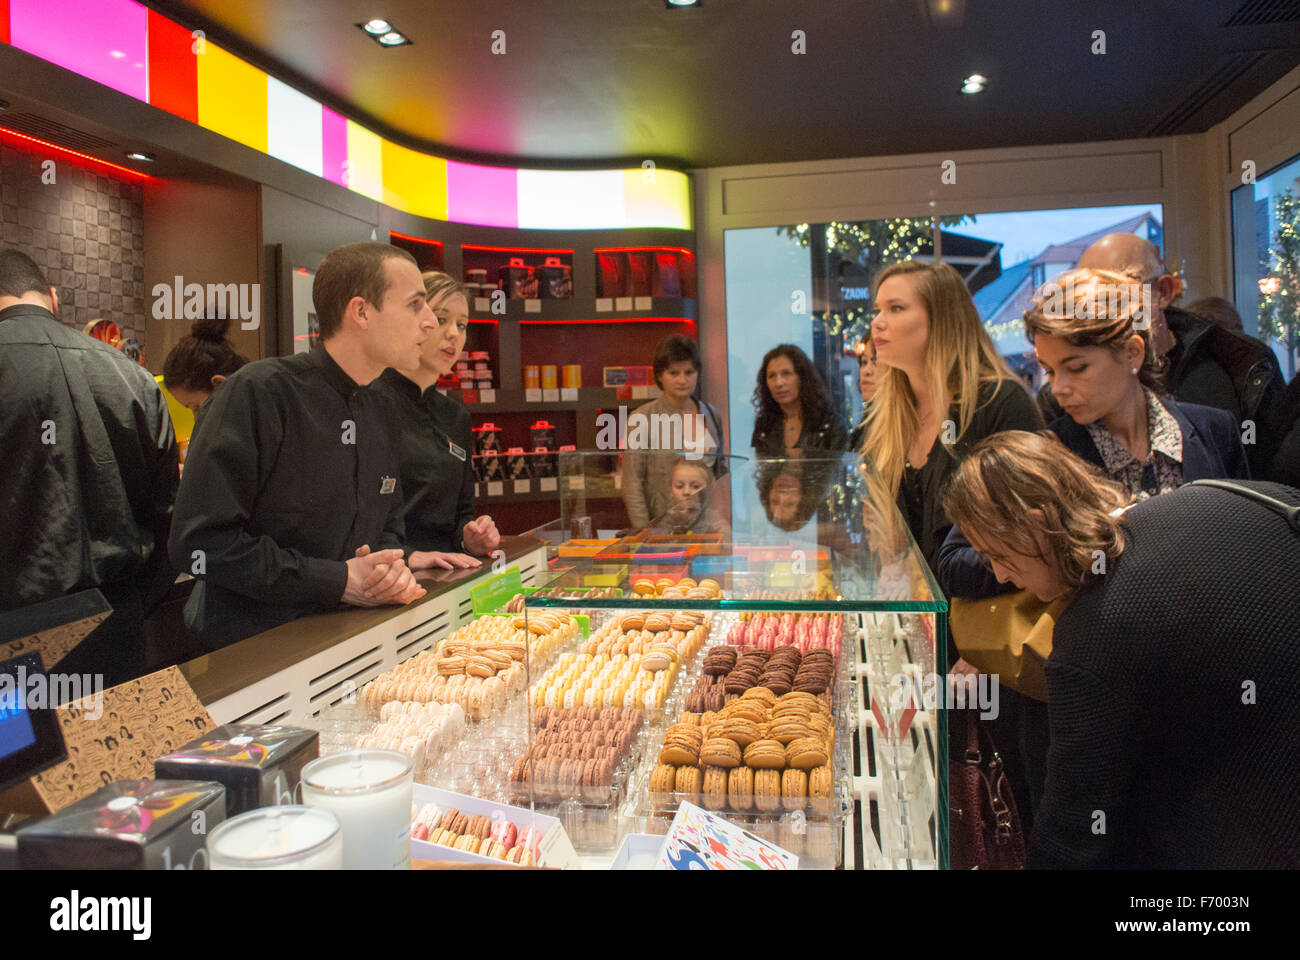 Paris, France, Women Buying, Shopping in Chocolate Shop 'Pierre Hermé' Chocolatier in Pastries, Mall, - Stock Image